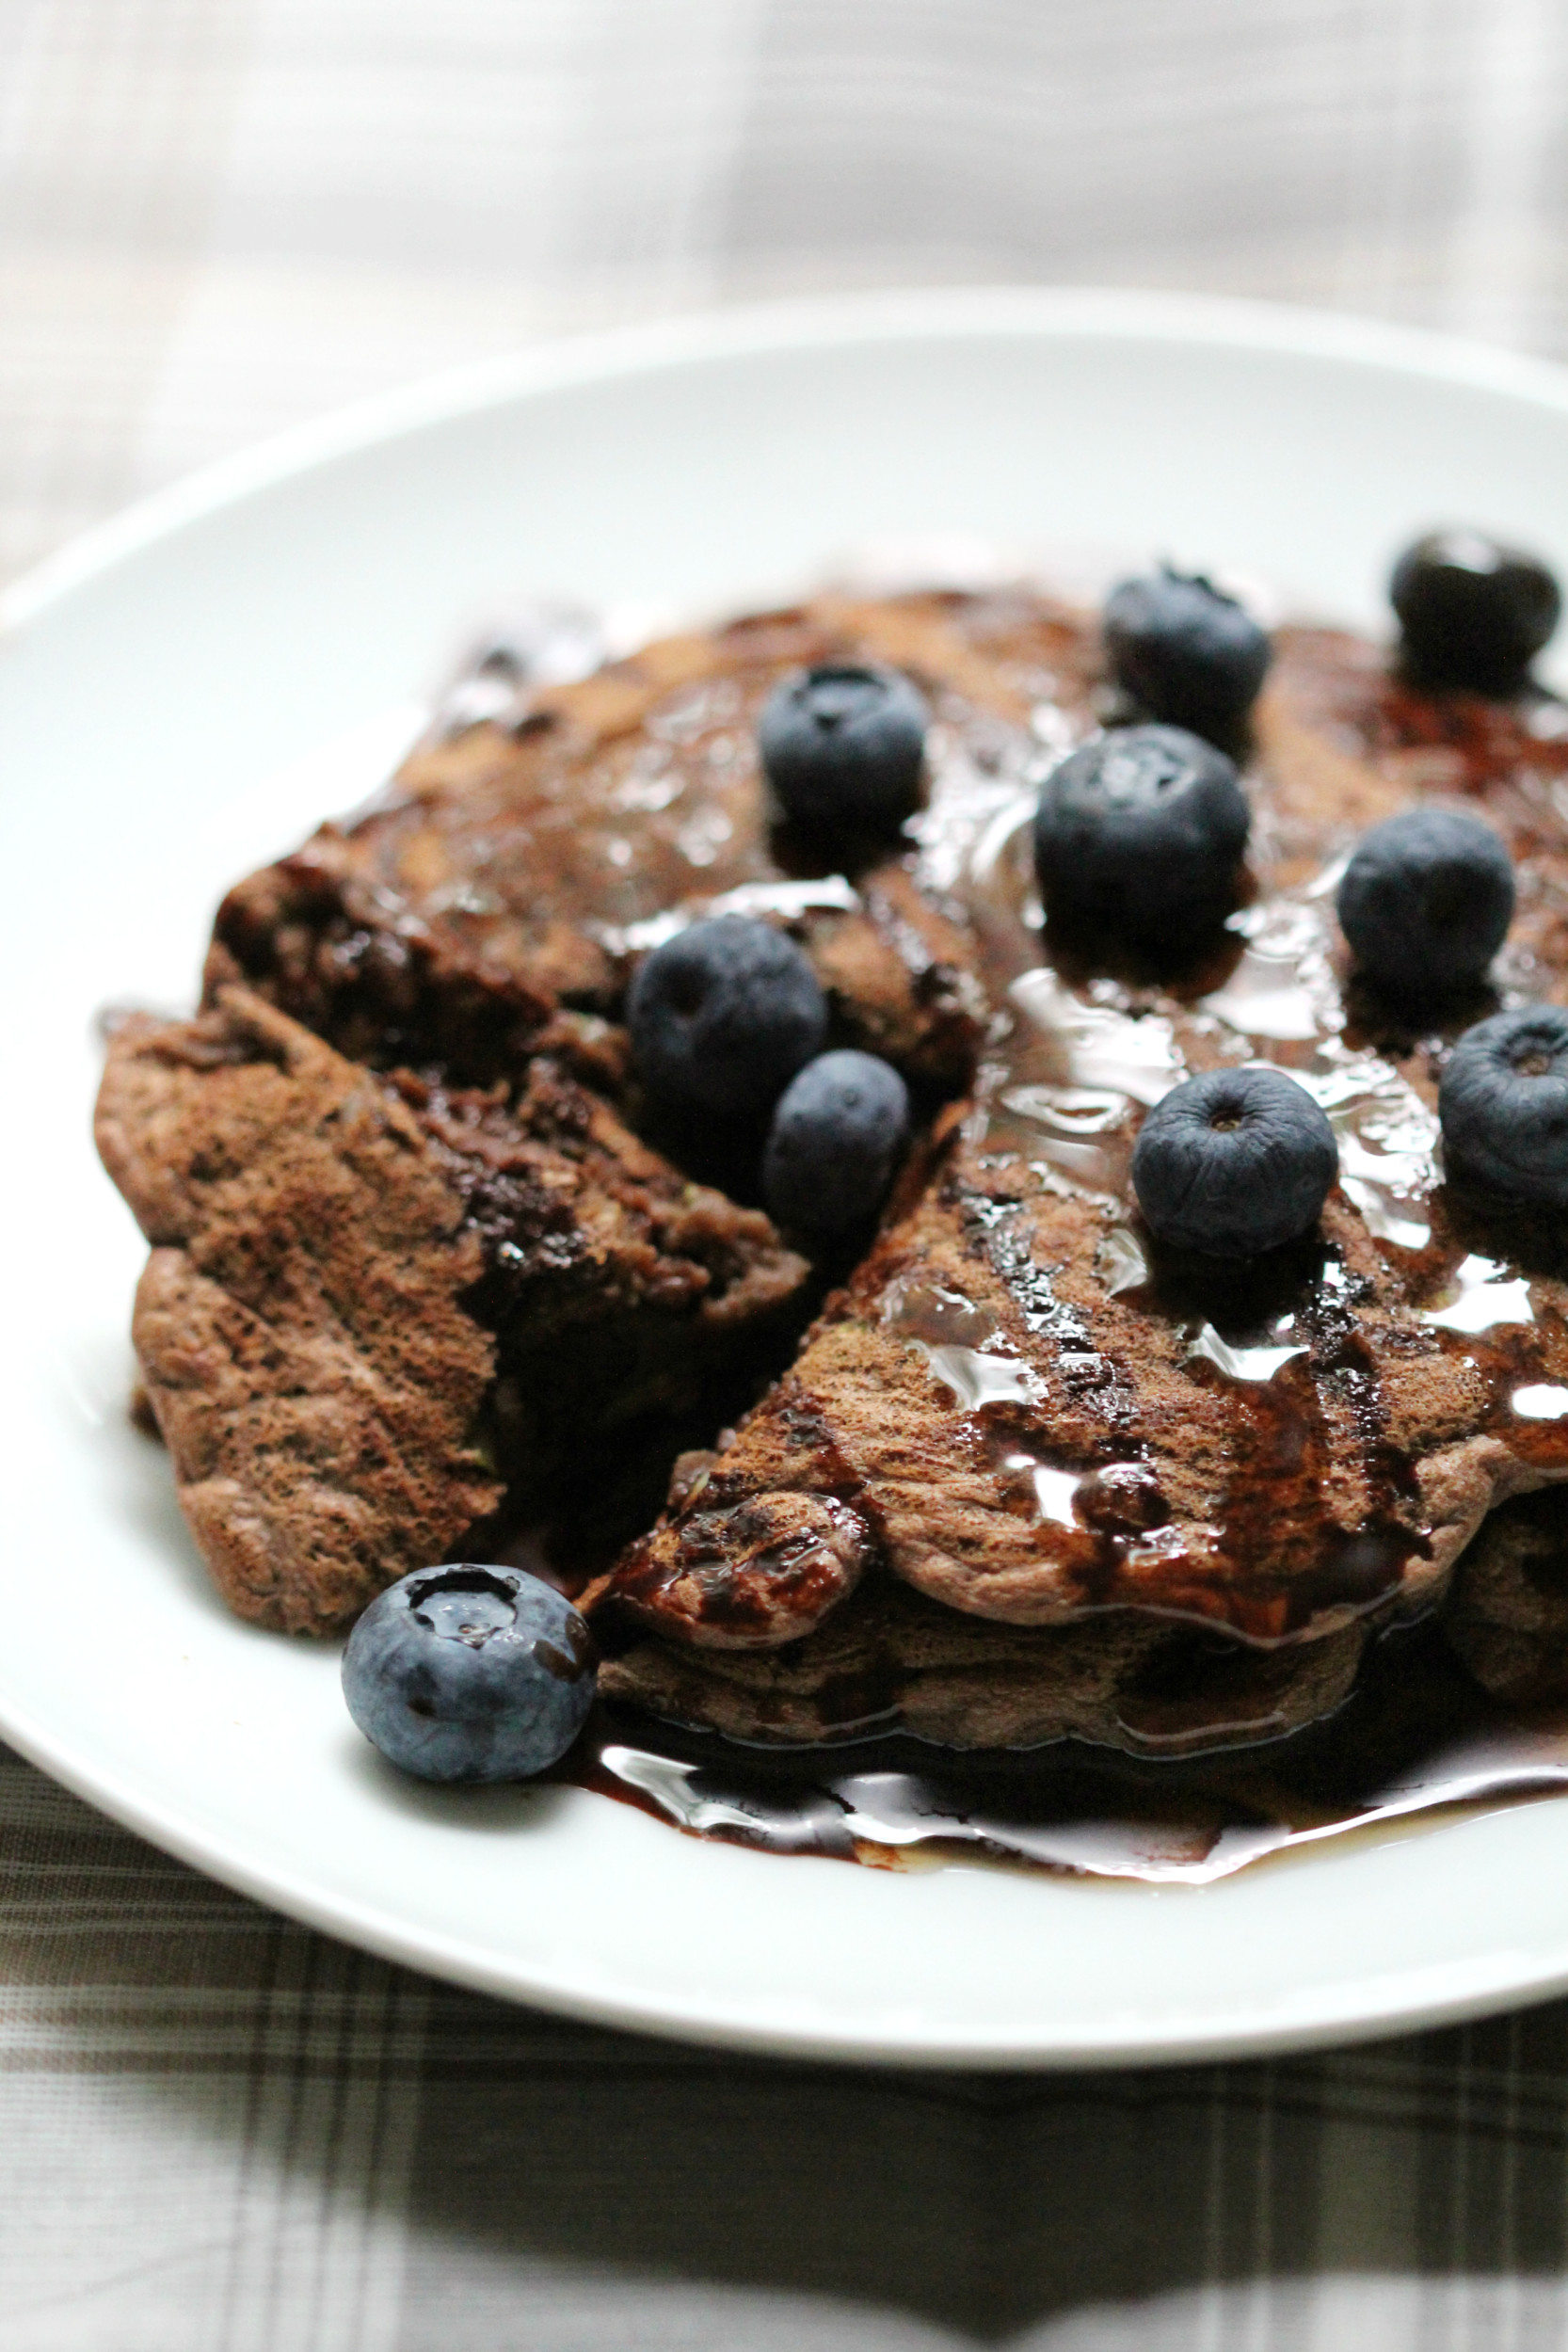 Chocolate-Zucchini-Pancakes-With-Blueberries-2-e1442664401552